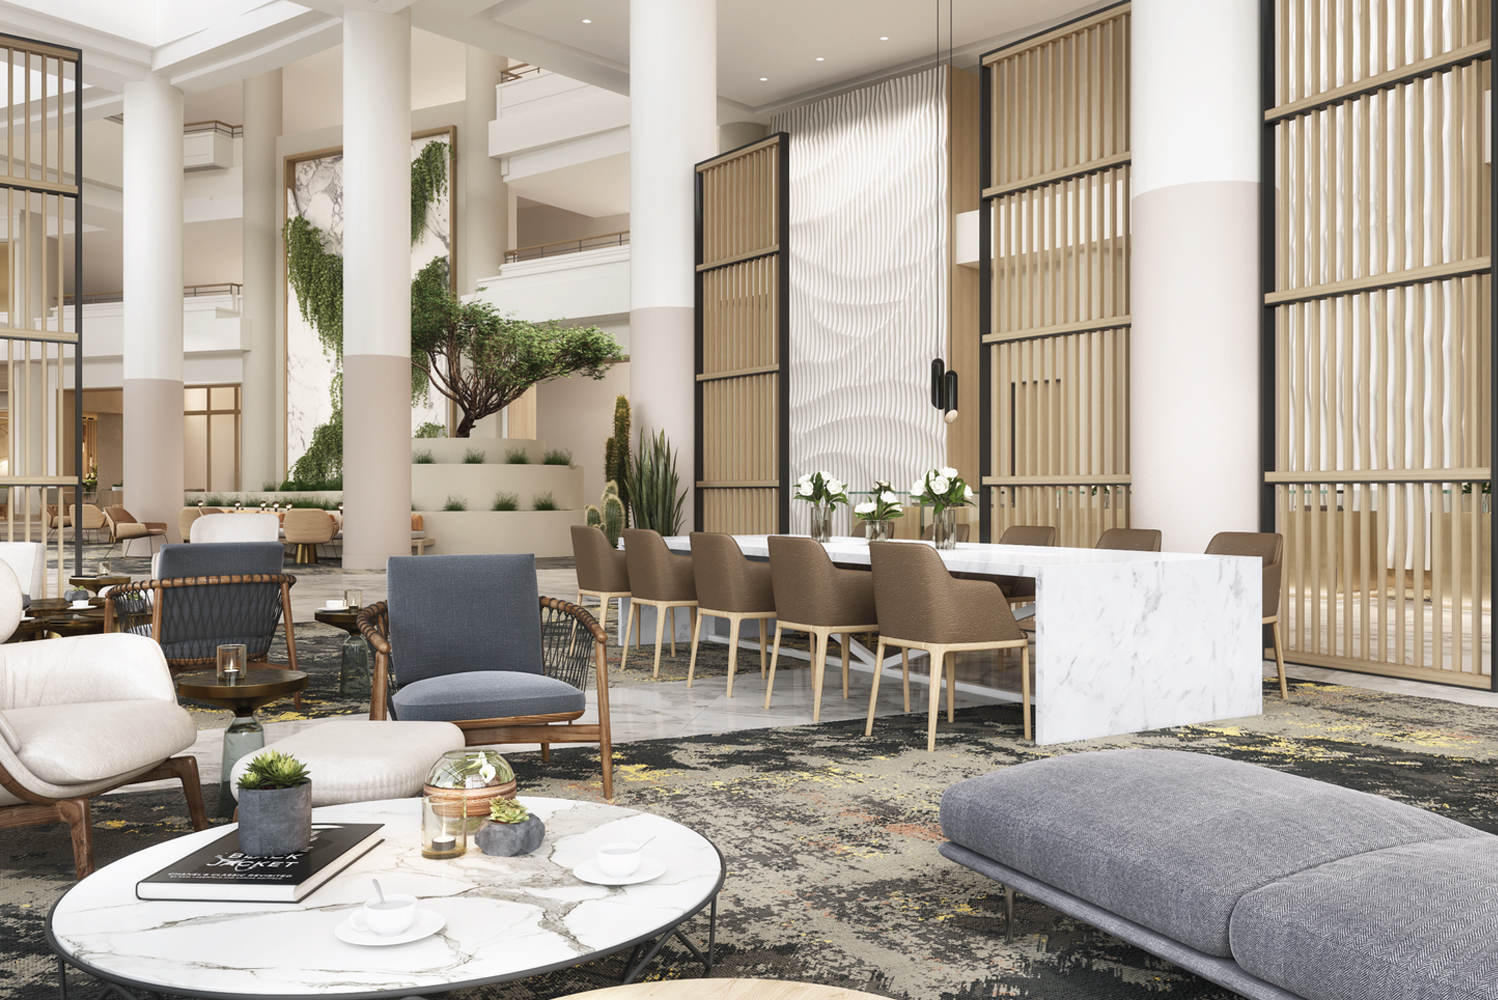 The property added a new dining venue, Navy Proof Food and Spirits; revitalized 469 guestrooms and suites; and refreshed the lobby space.